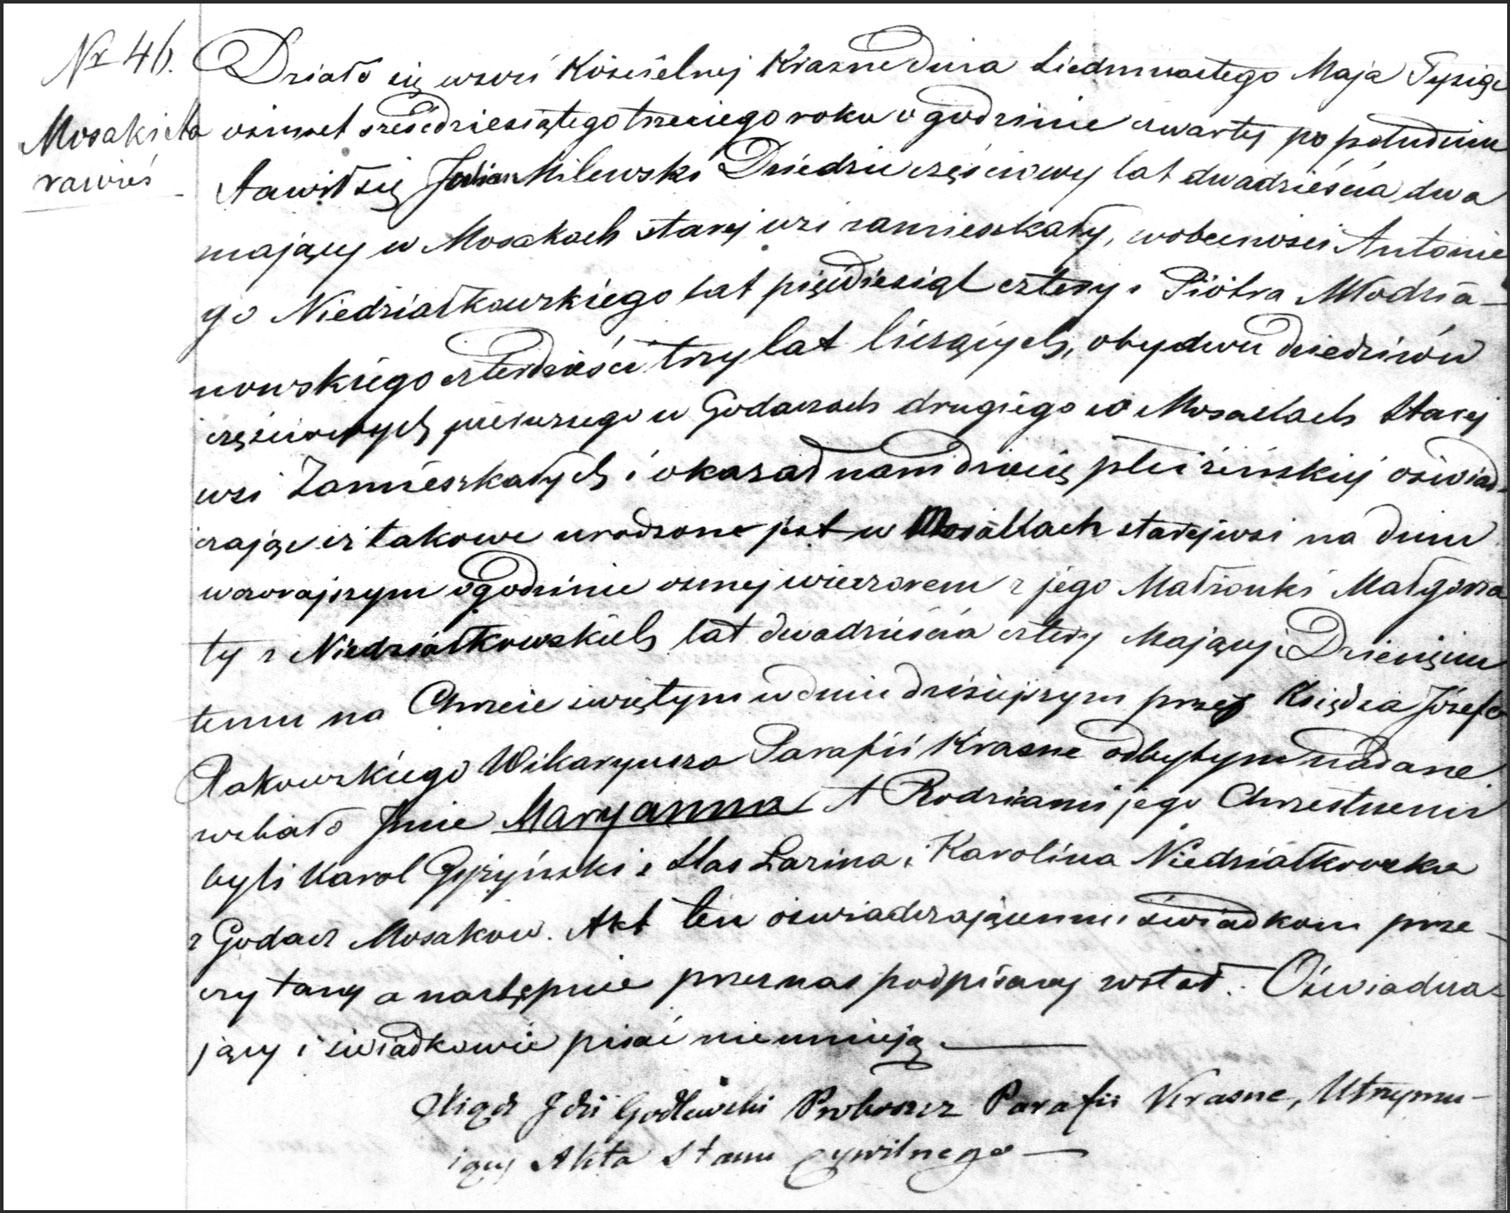 The Birth and Baptismal Record of Maryanna Milewska - 1863